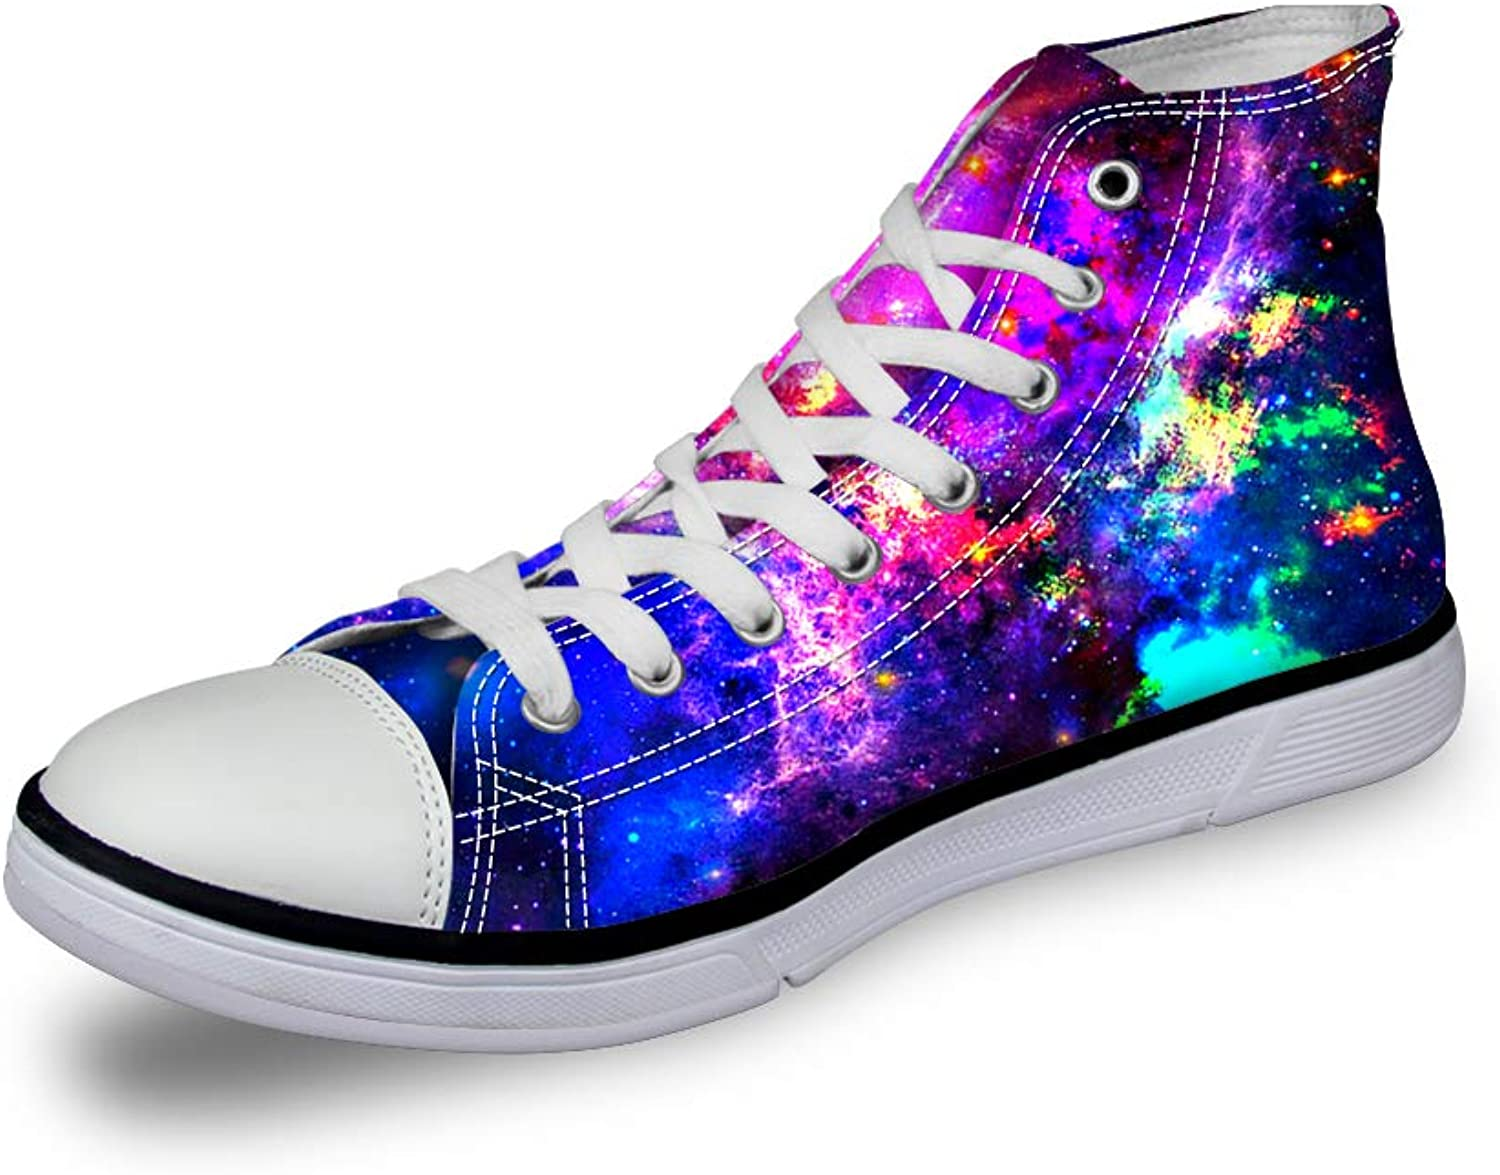 Instantarts Women's High Top Galaxy Casual Canvas Fashion shoes Trainers Sneaker